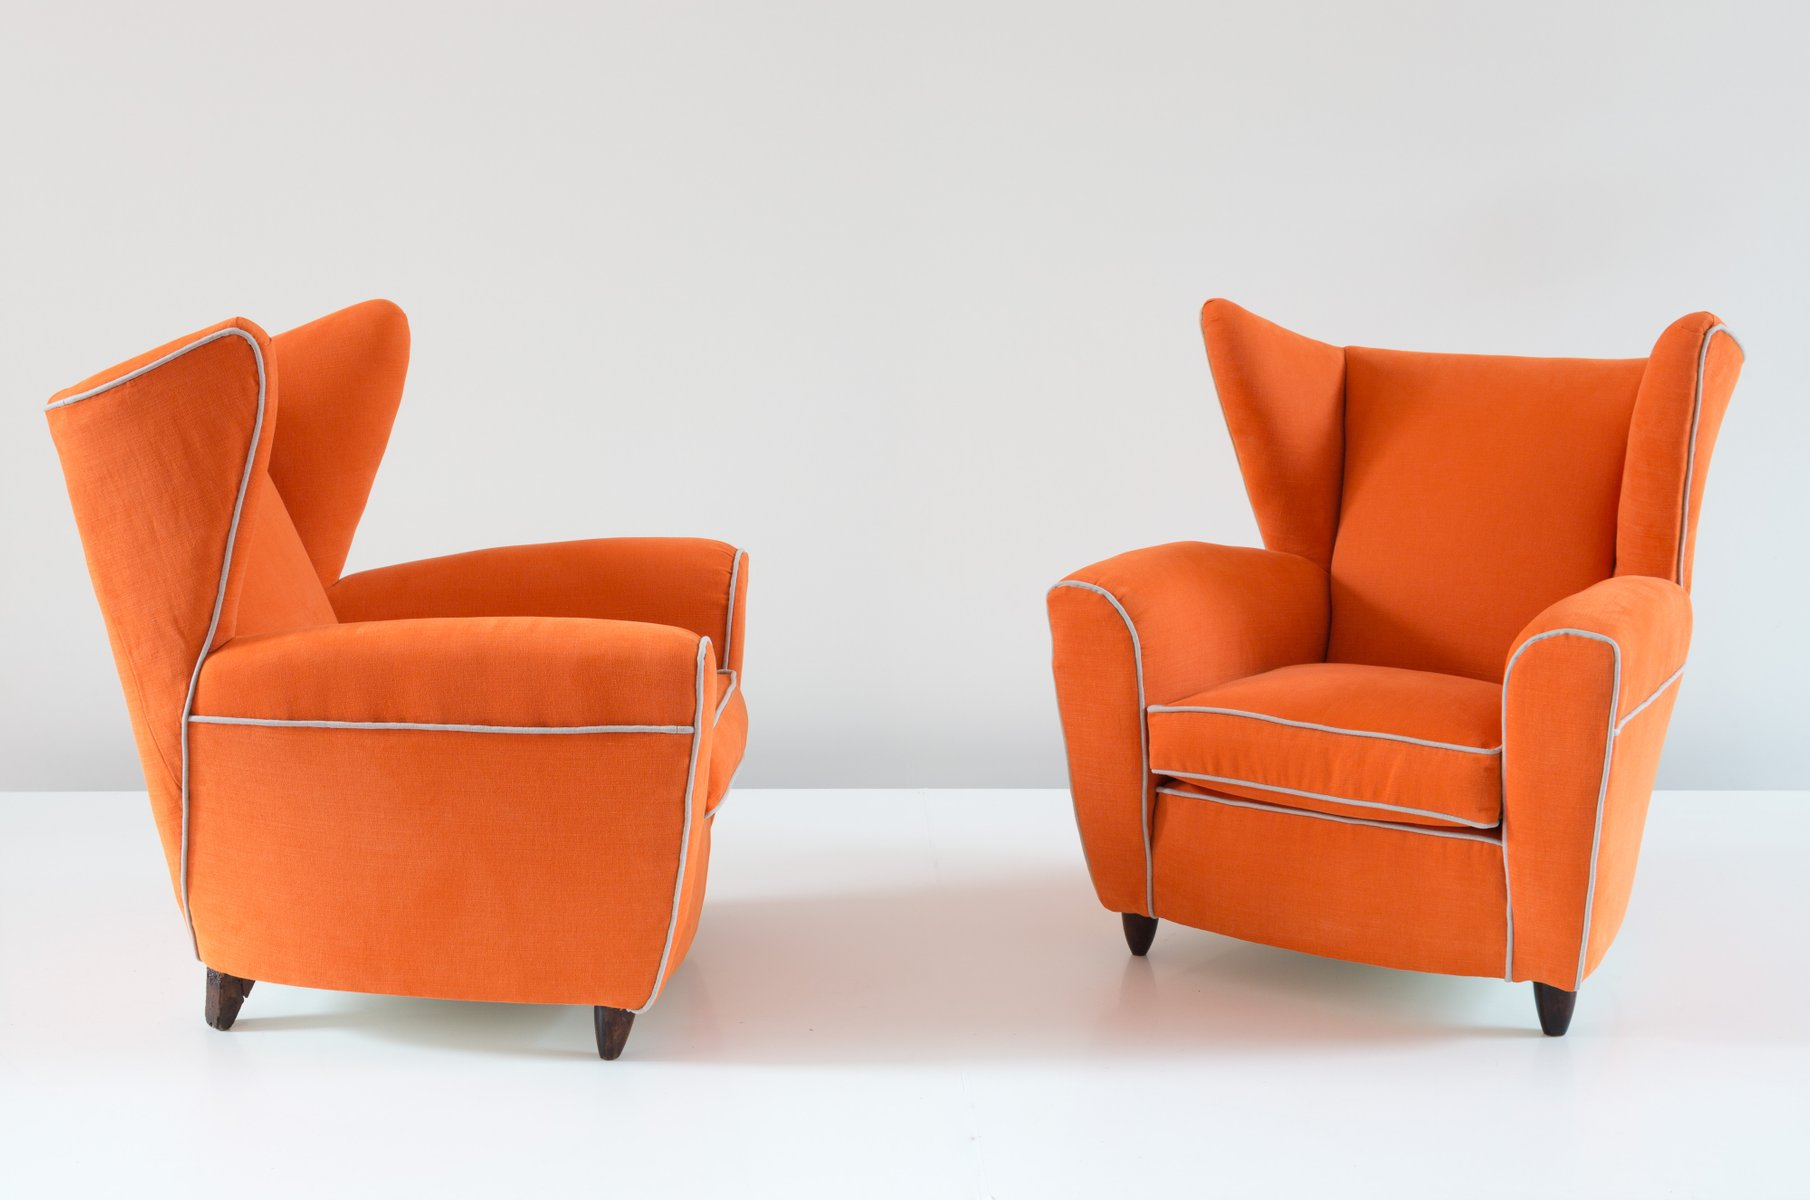 leather wingback chairs south africa bedroom chair diy orange armchairs by melchiorre bega set of 2 for